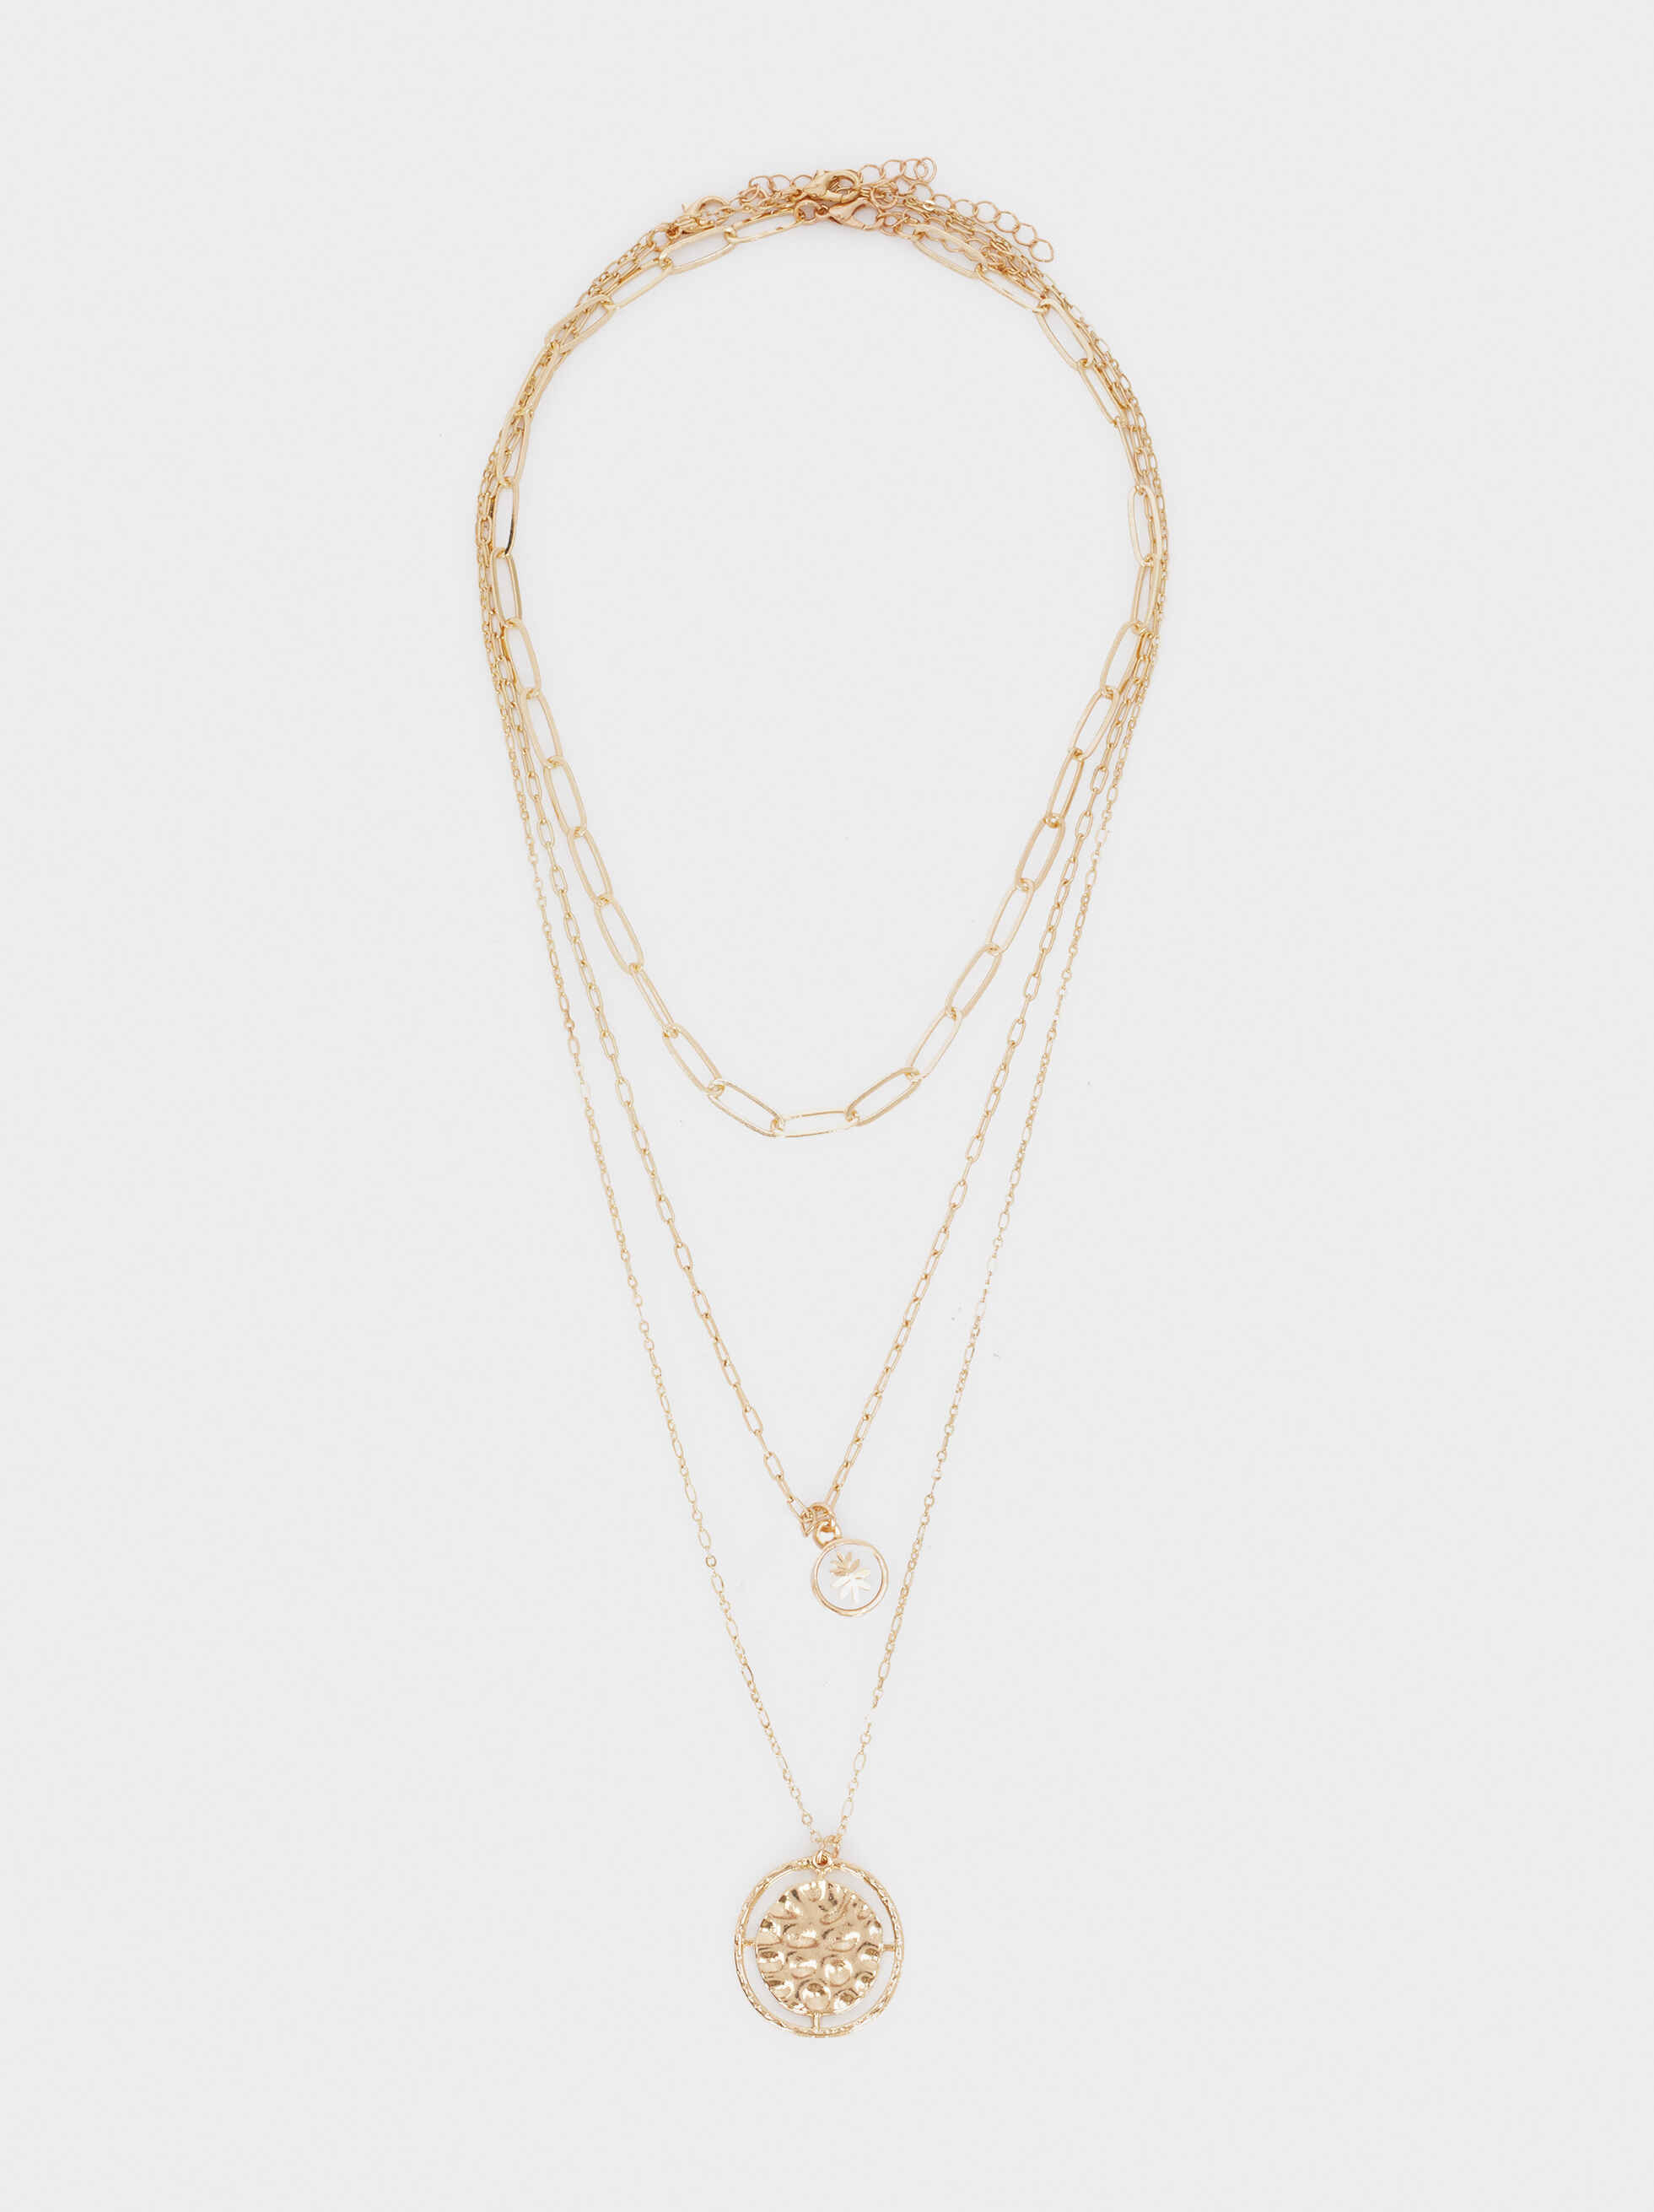 Short Gold Necklace With Medallion And Faux Pearl, Golden, hi-res